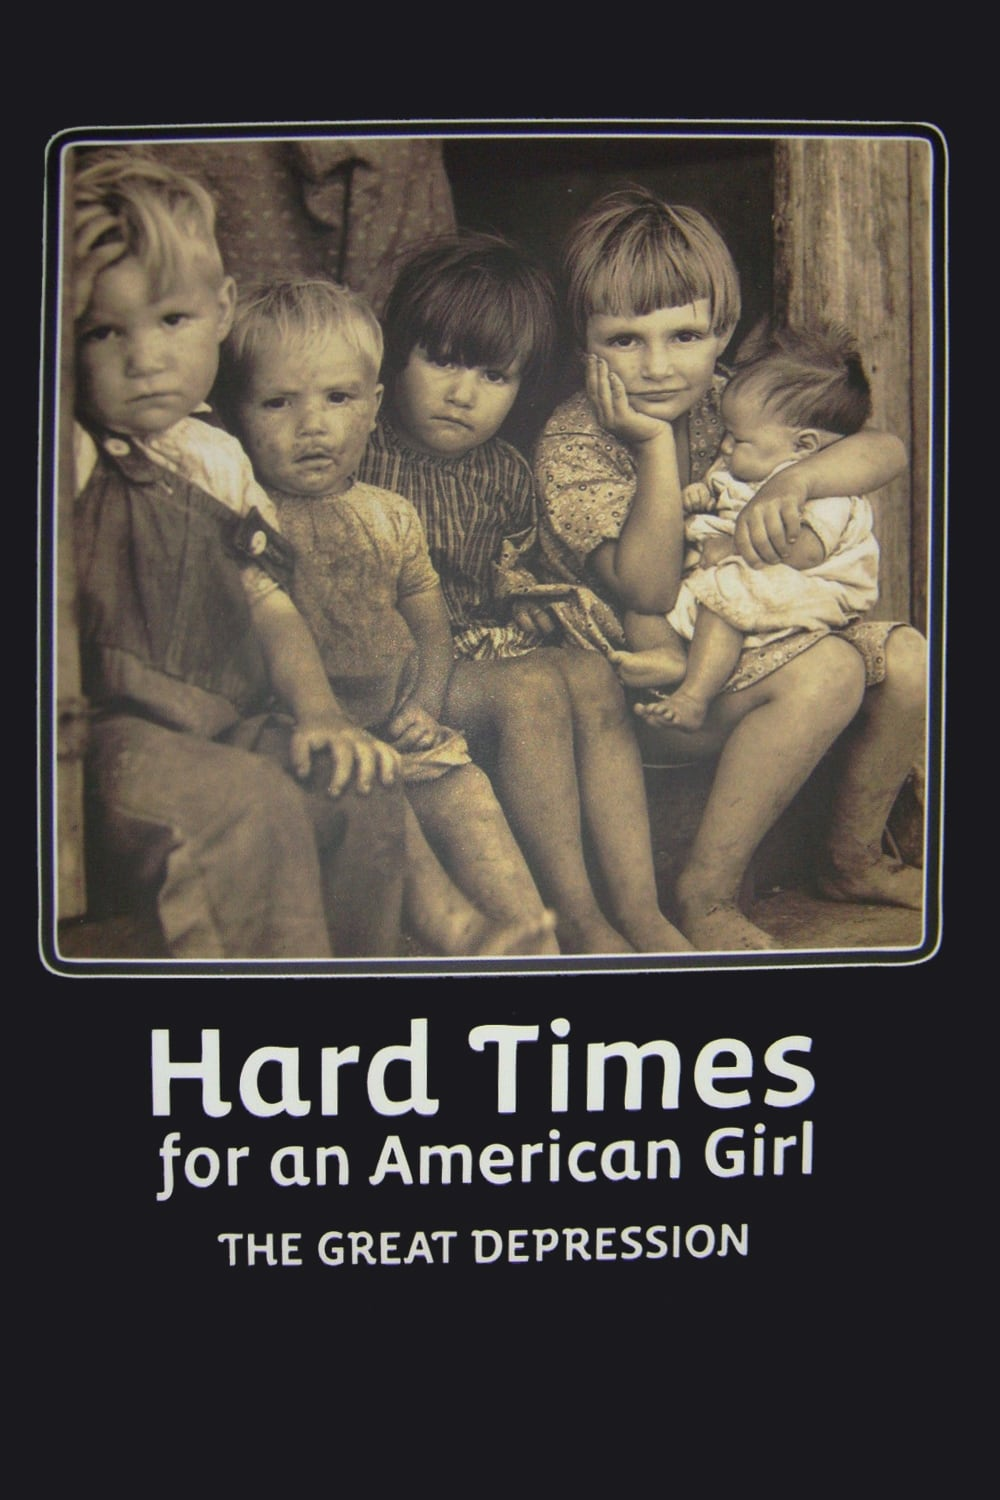 Hard Times for an American Girl: The Great Depression (2009)